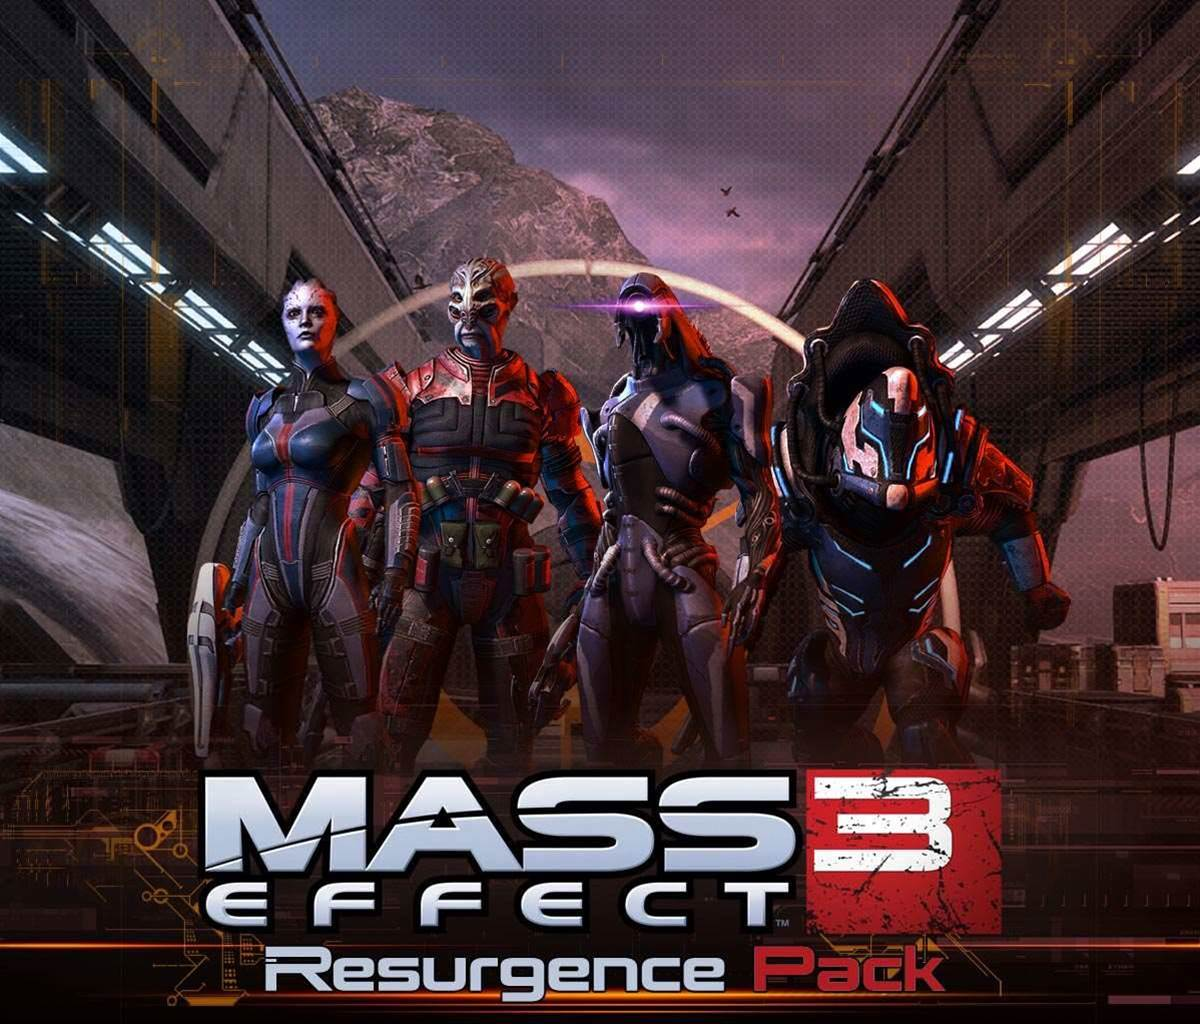 New Mass Effect 3 multiplayer DLC out now on PC